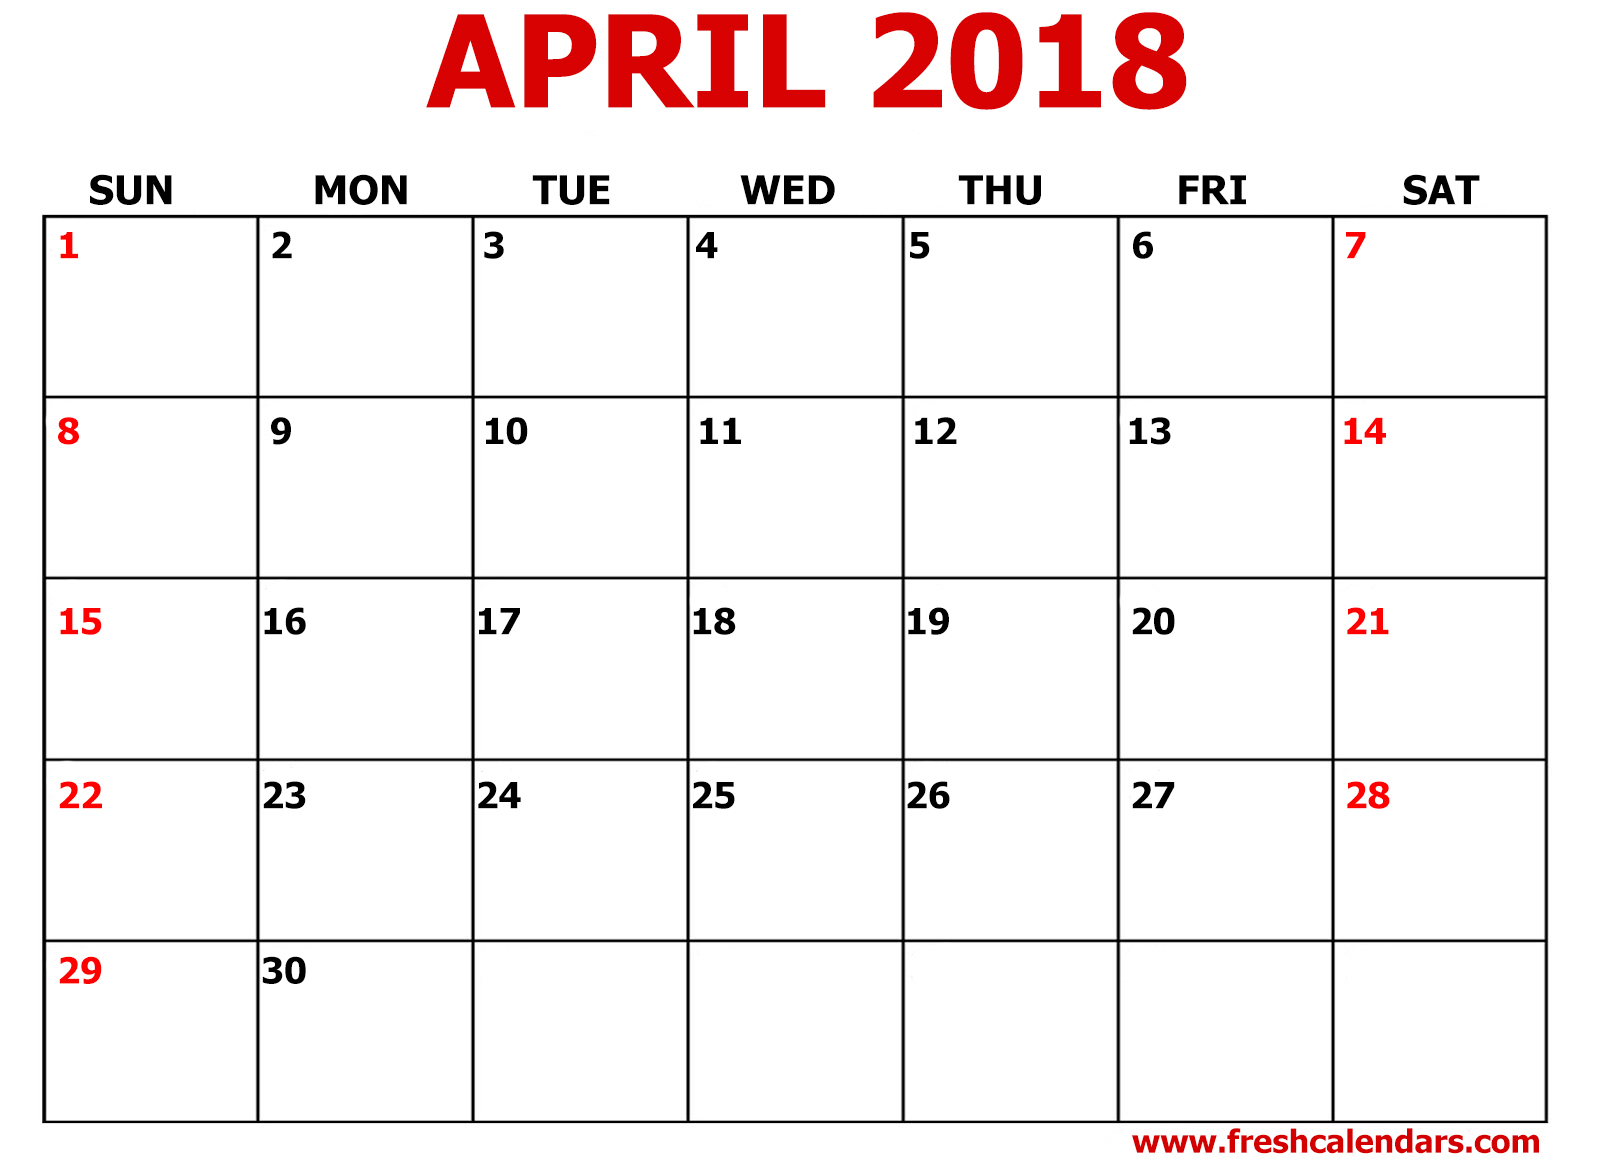 Calendar Template April 2018 : Best april calendar printable templates